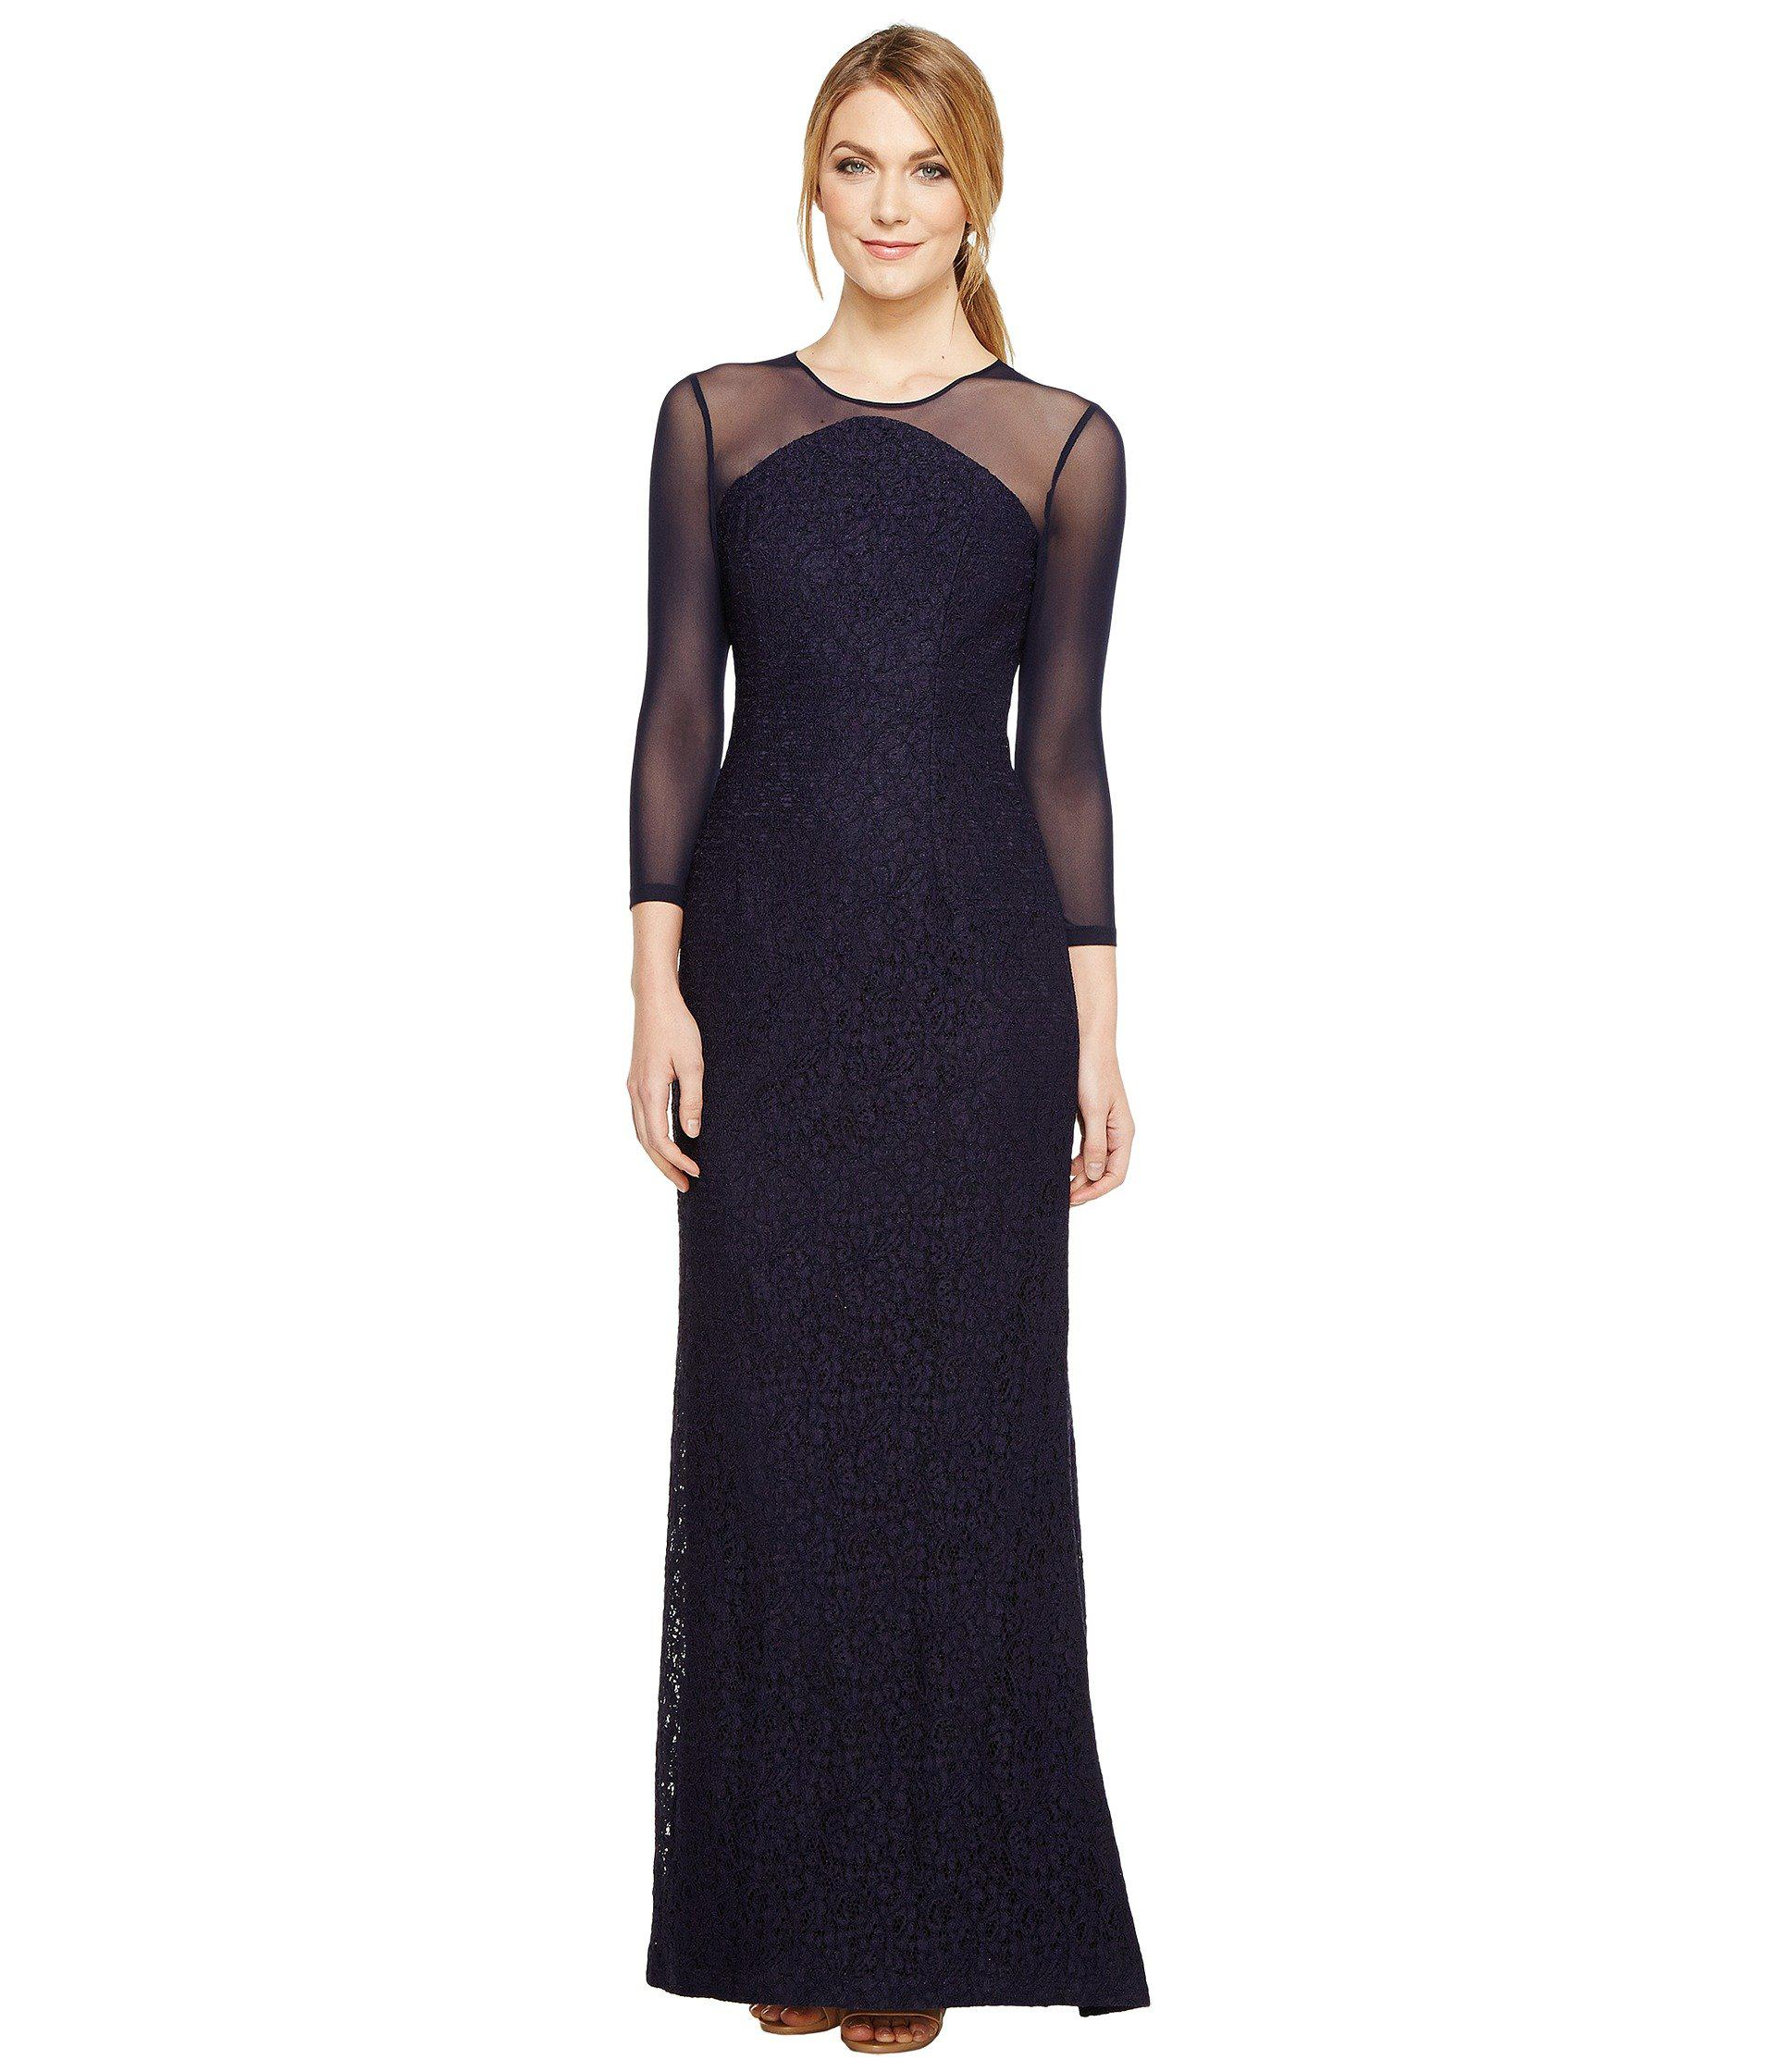 Lyst - Adrianna Papell Lace Modified Mermaid Gown in Blue - Save ...